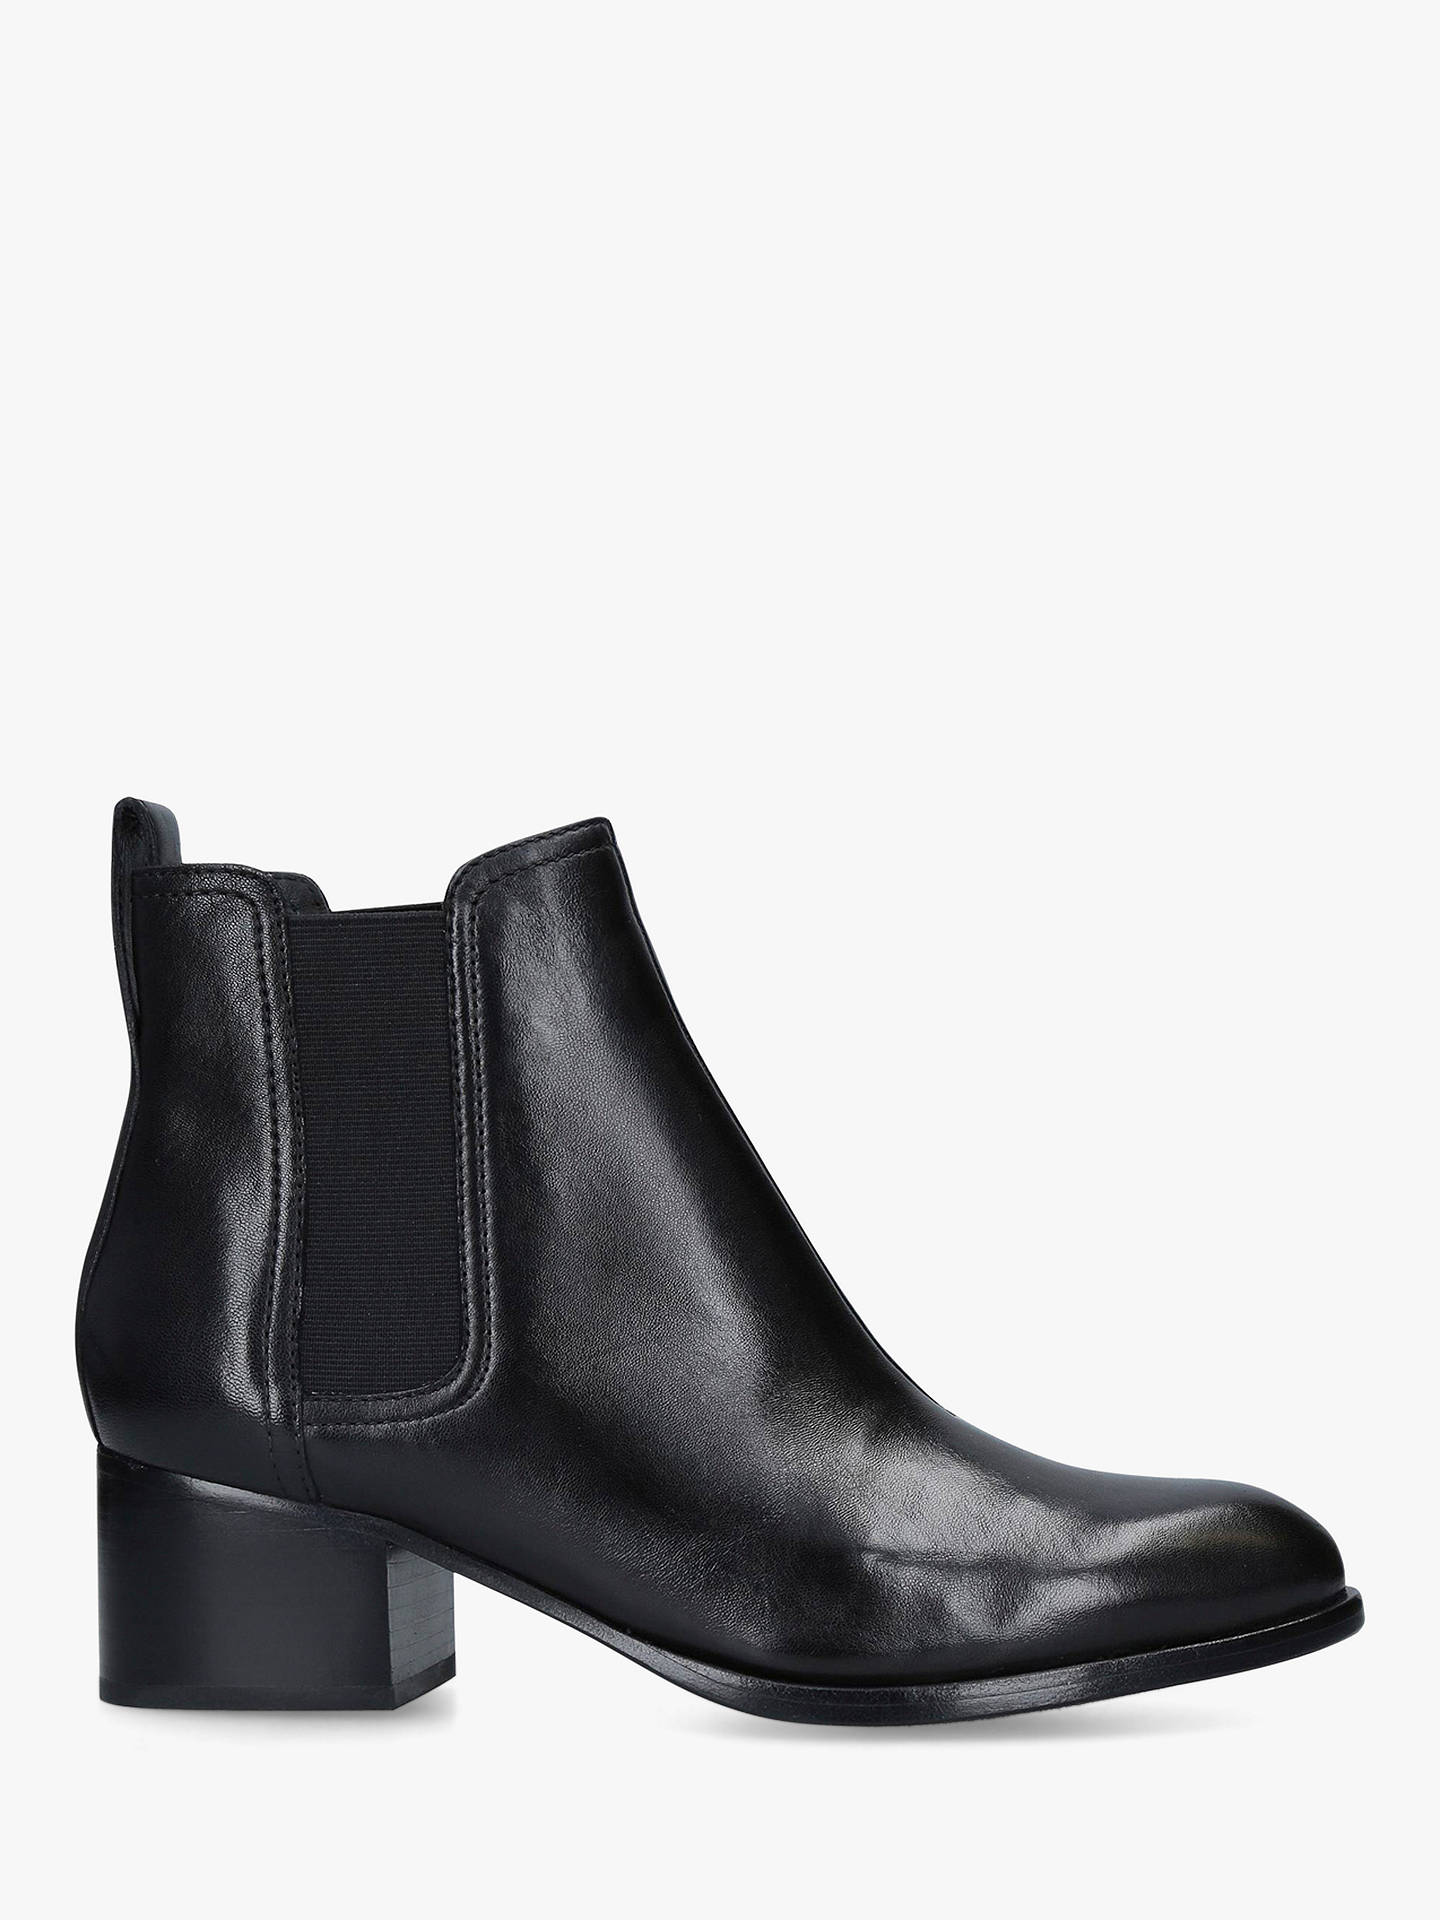 4a6998ed7c Buy rag & bone Walker Block Heel Ankle Boots, Black Leather, 3.5 Online at  ...